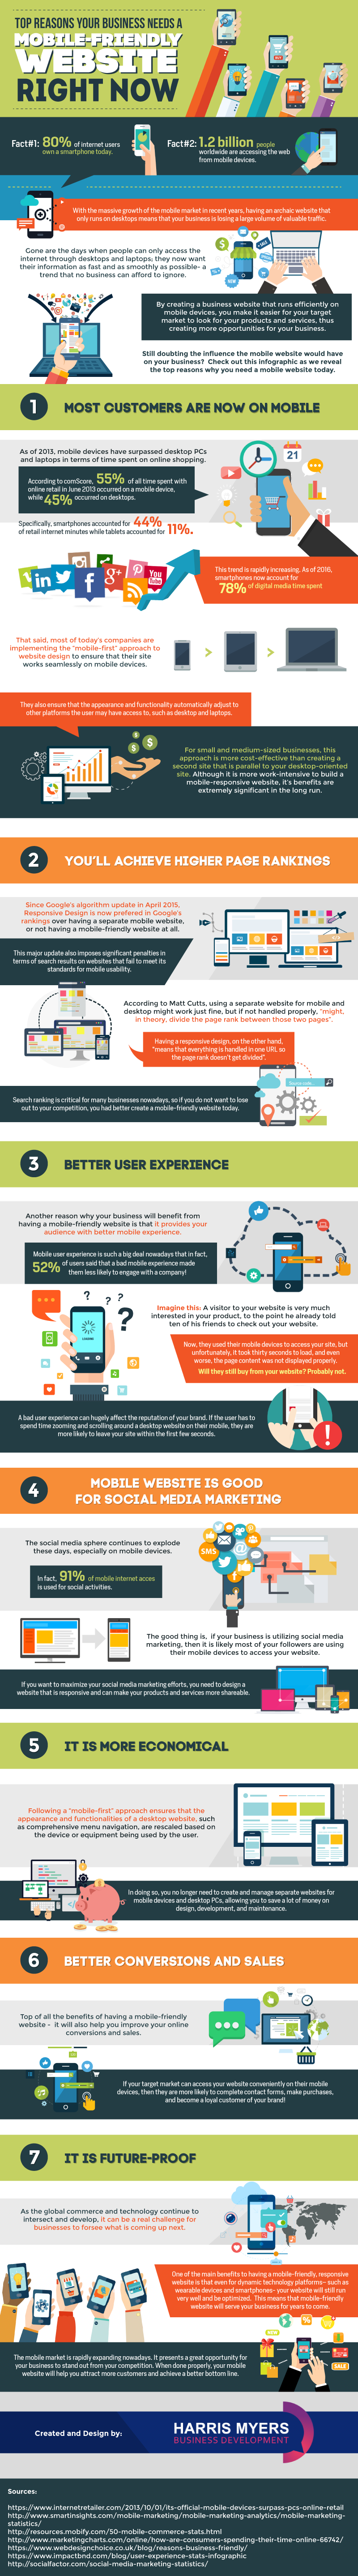 Top Reasons Your Business Needs a Mobile-Friendly Website Right Now